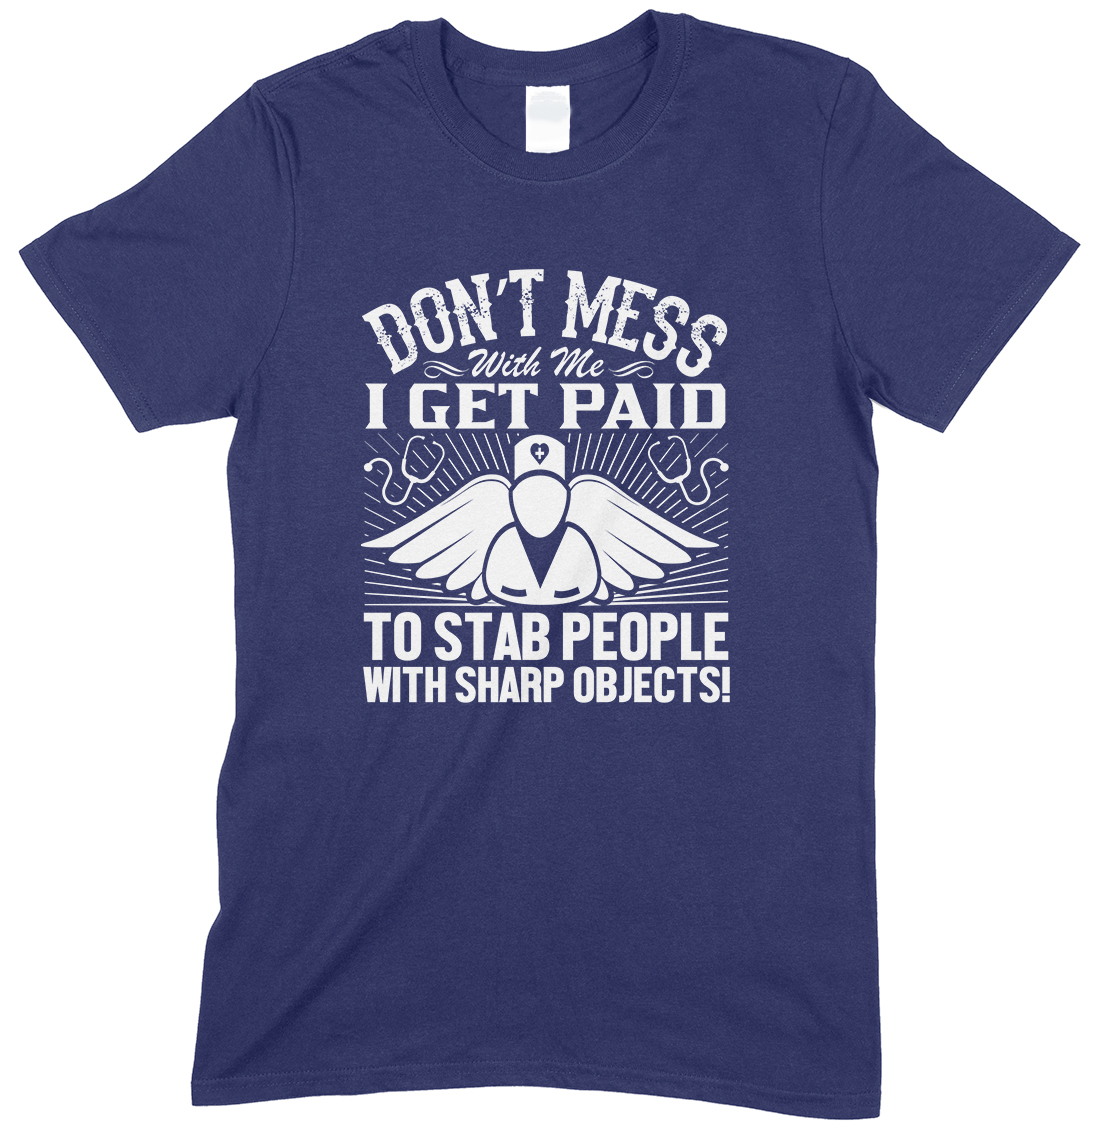 Don't Mess with Me I Get Paid to Stab People with Sharp Objects!Unisex Nurse T Shirt